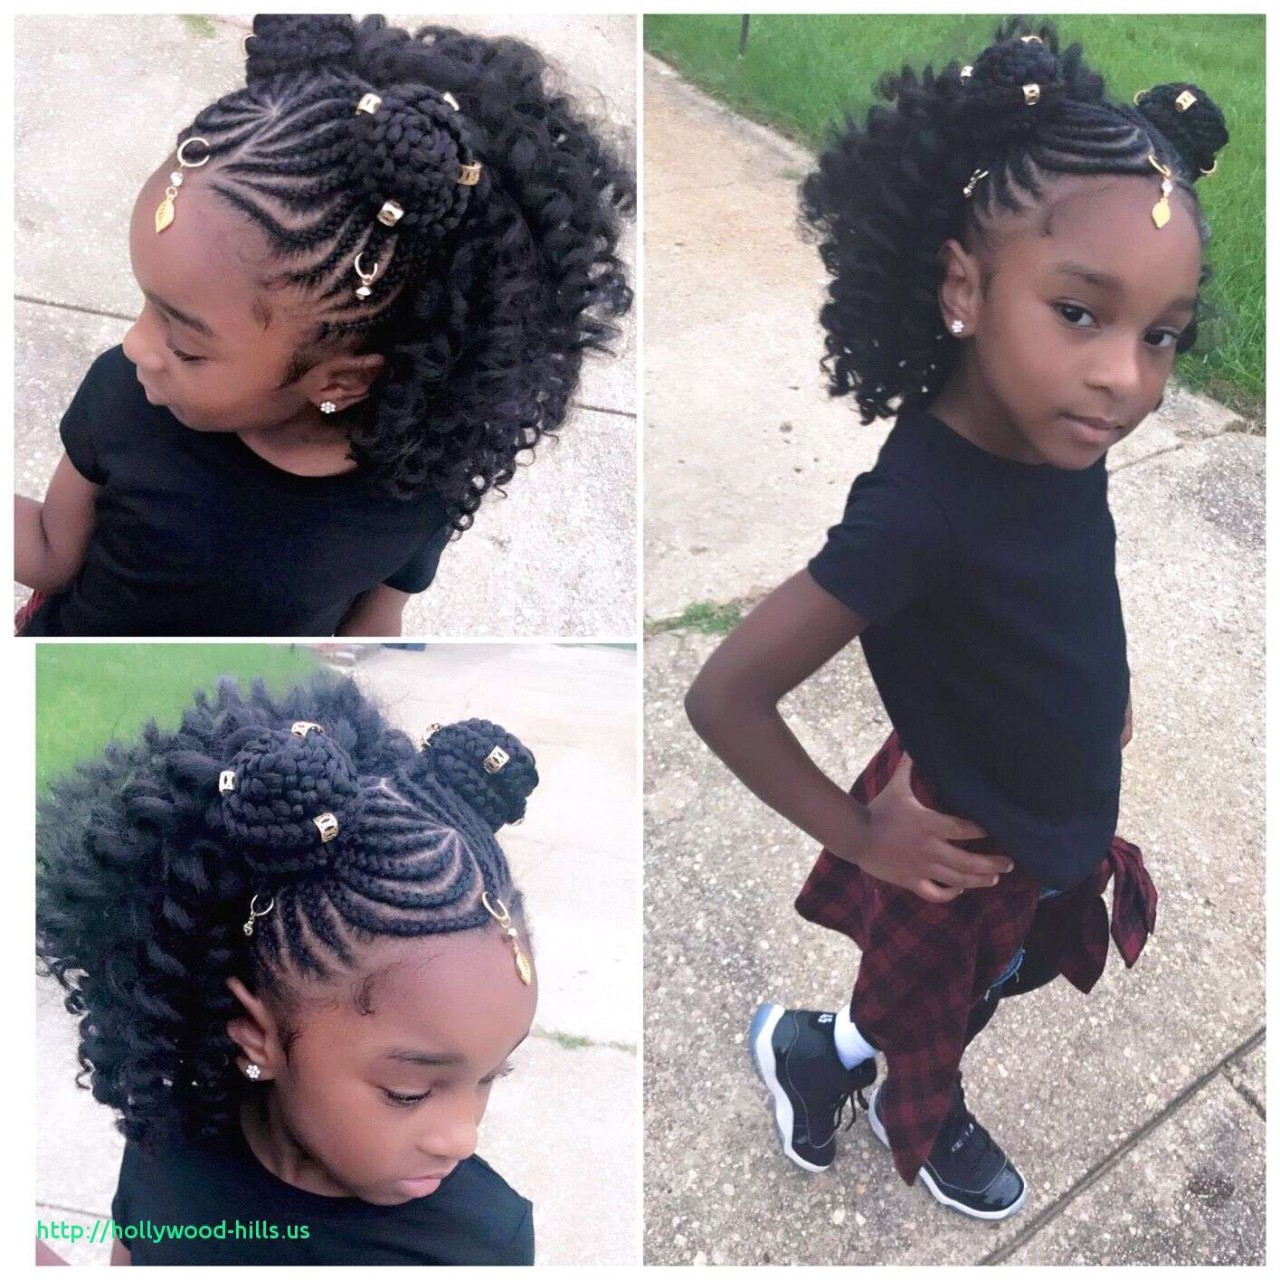 77 Black Baby Hairstyles for Short Hair Luxury Hairstyles Black Babies Short Hair Fresh 2 Year